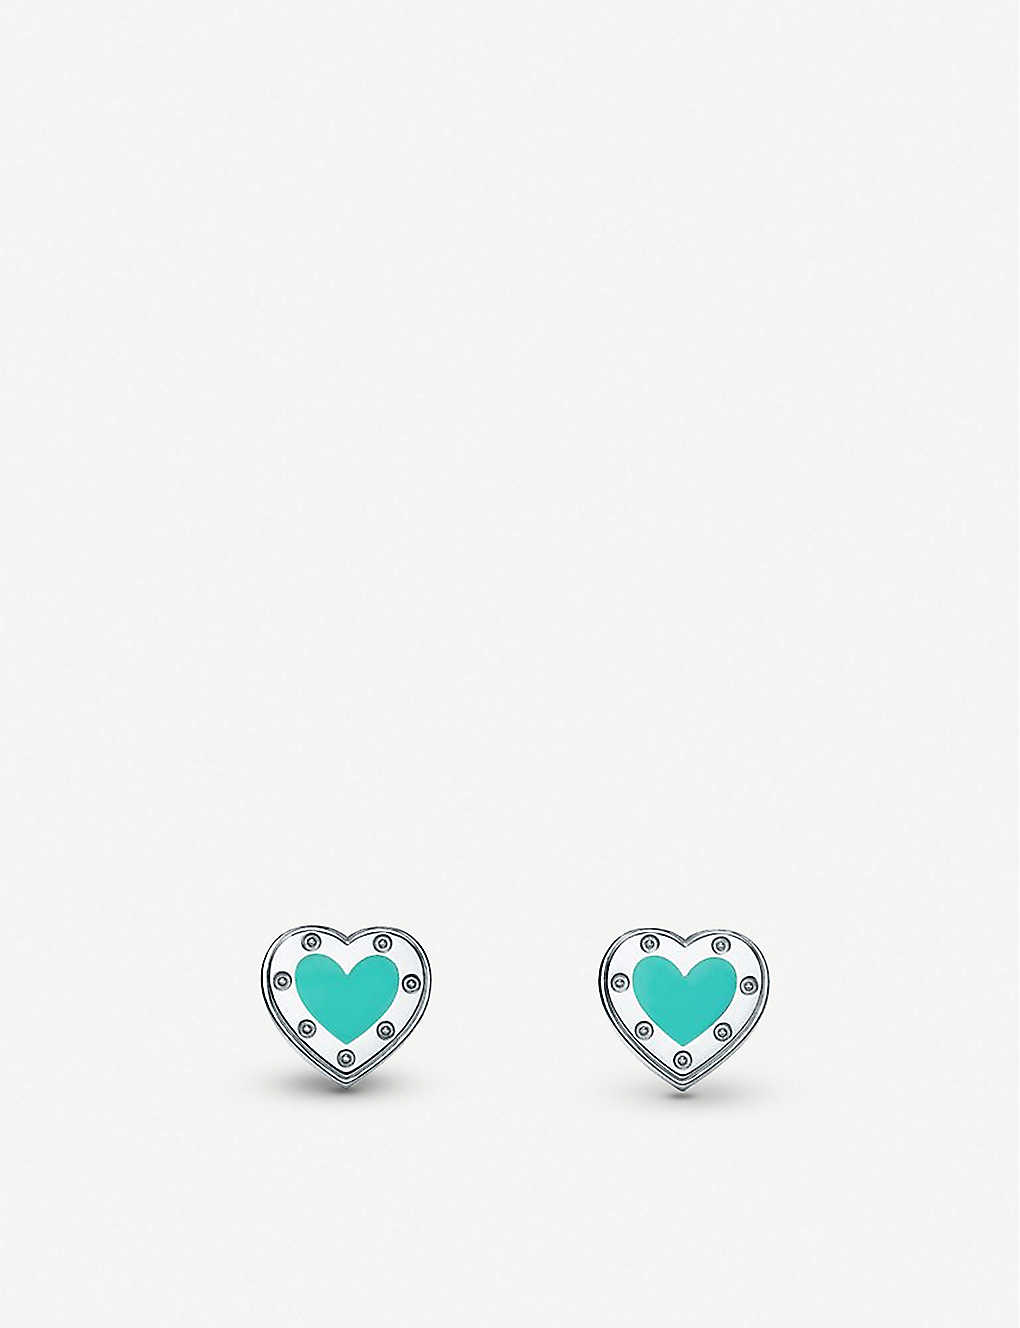 TIFFANY & CO: Love Heart enamelled sterling silver stud earrings